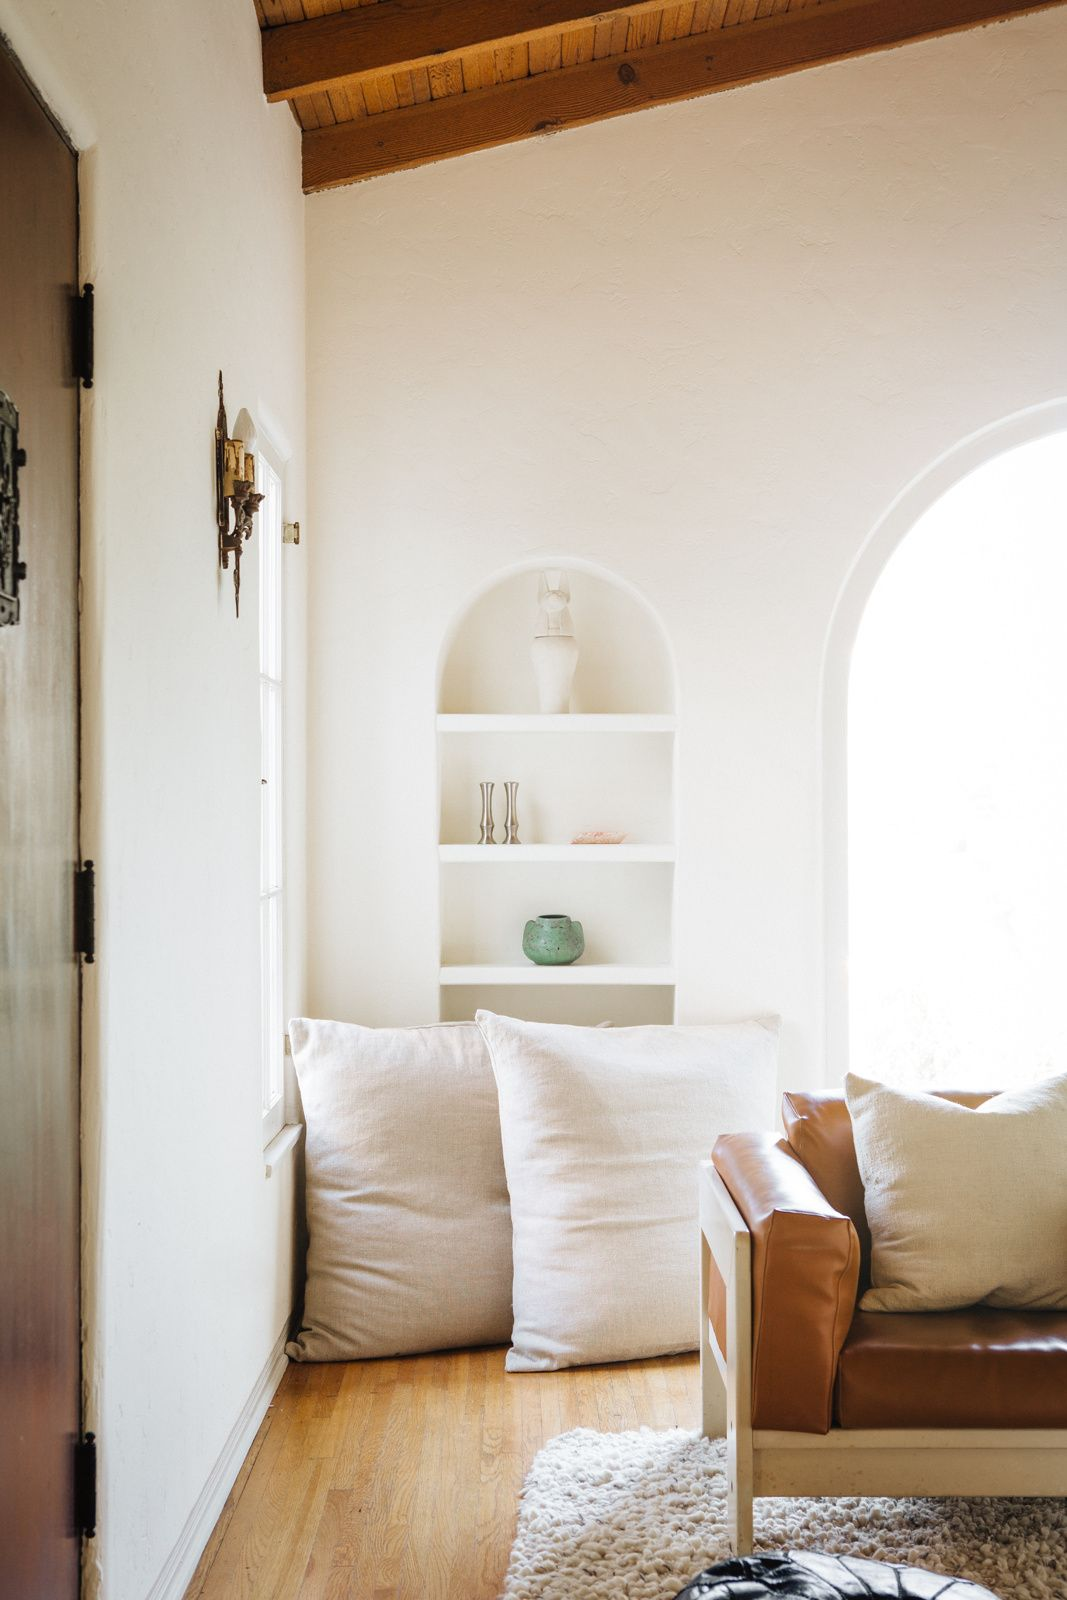 living room with inset shelf | Dreamy Interiors | Pinterest ...